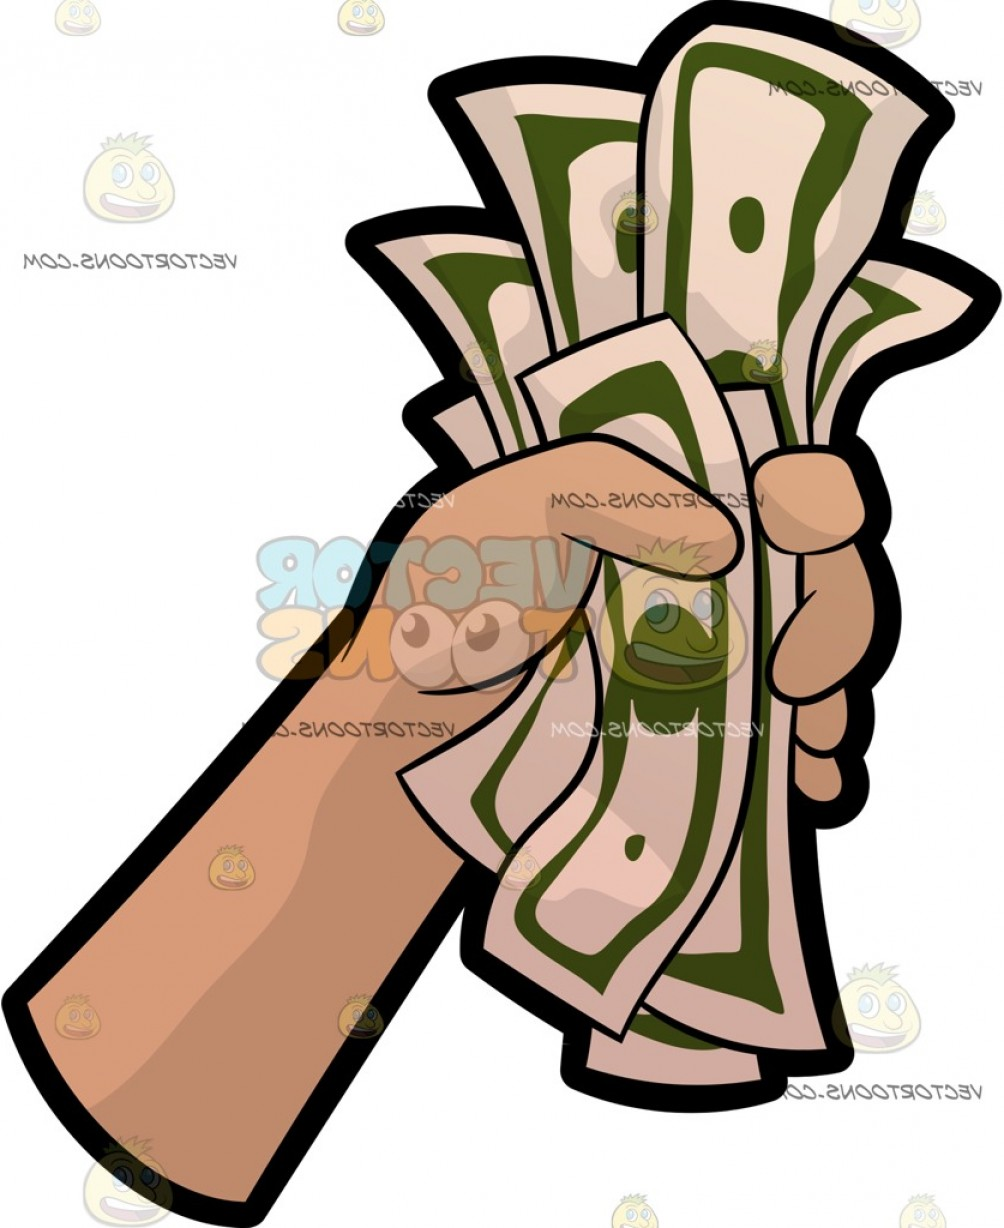 Hand Fist Vector: A Hand Holding A Fist Full Of Money